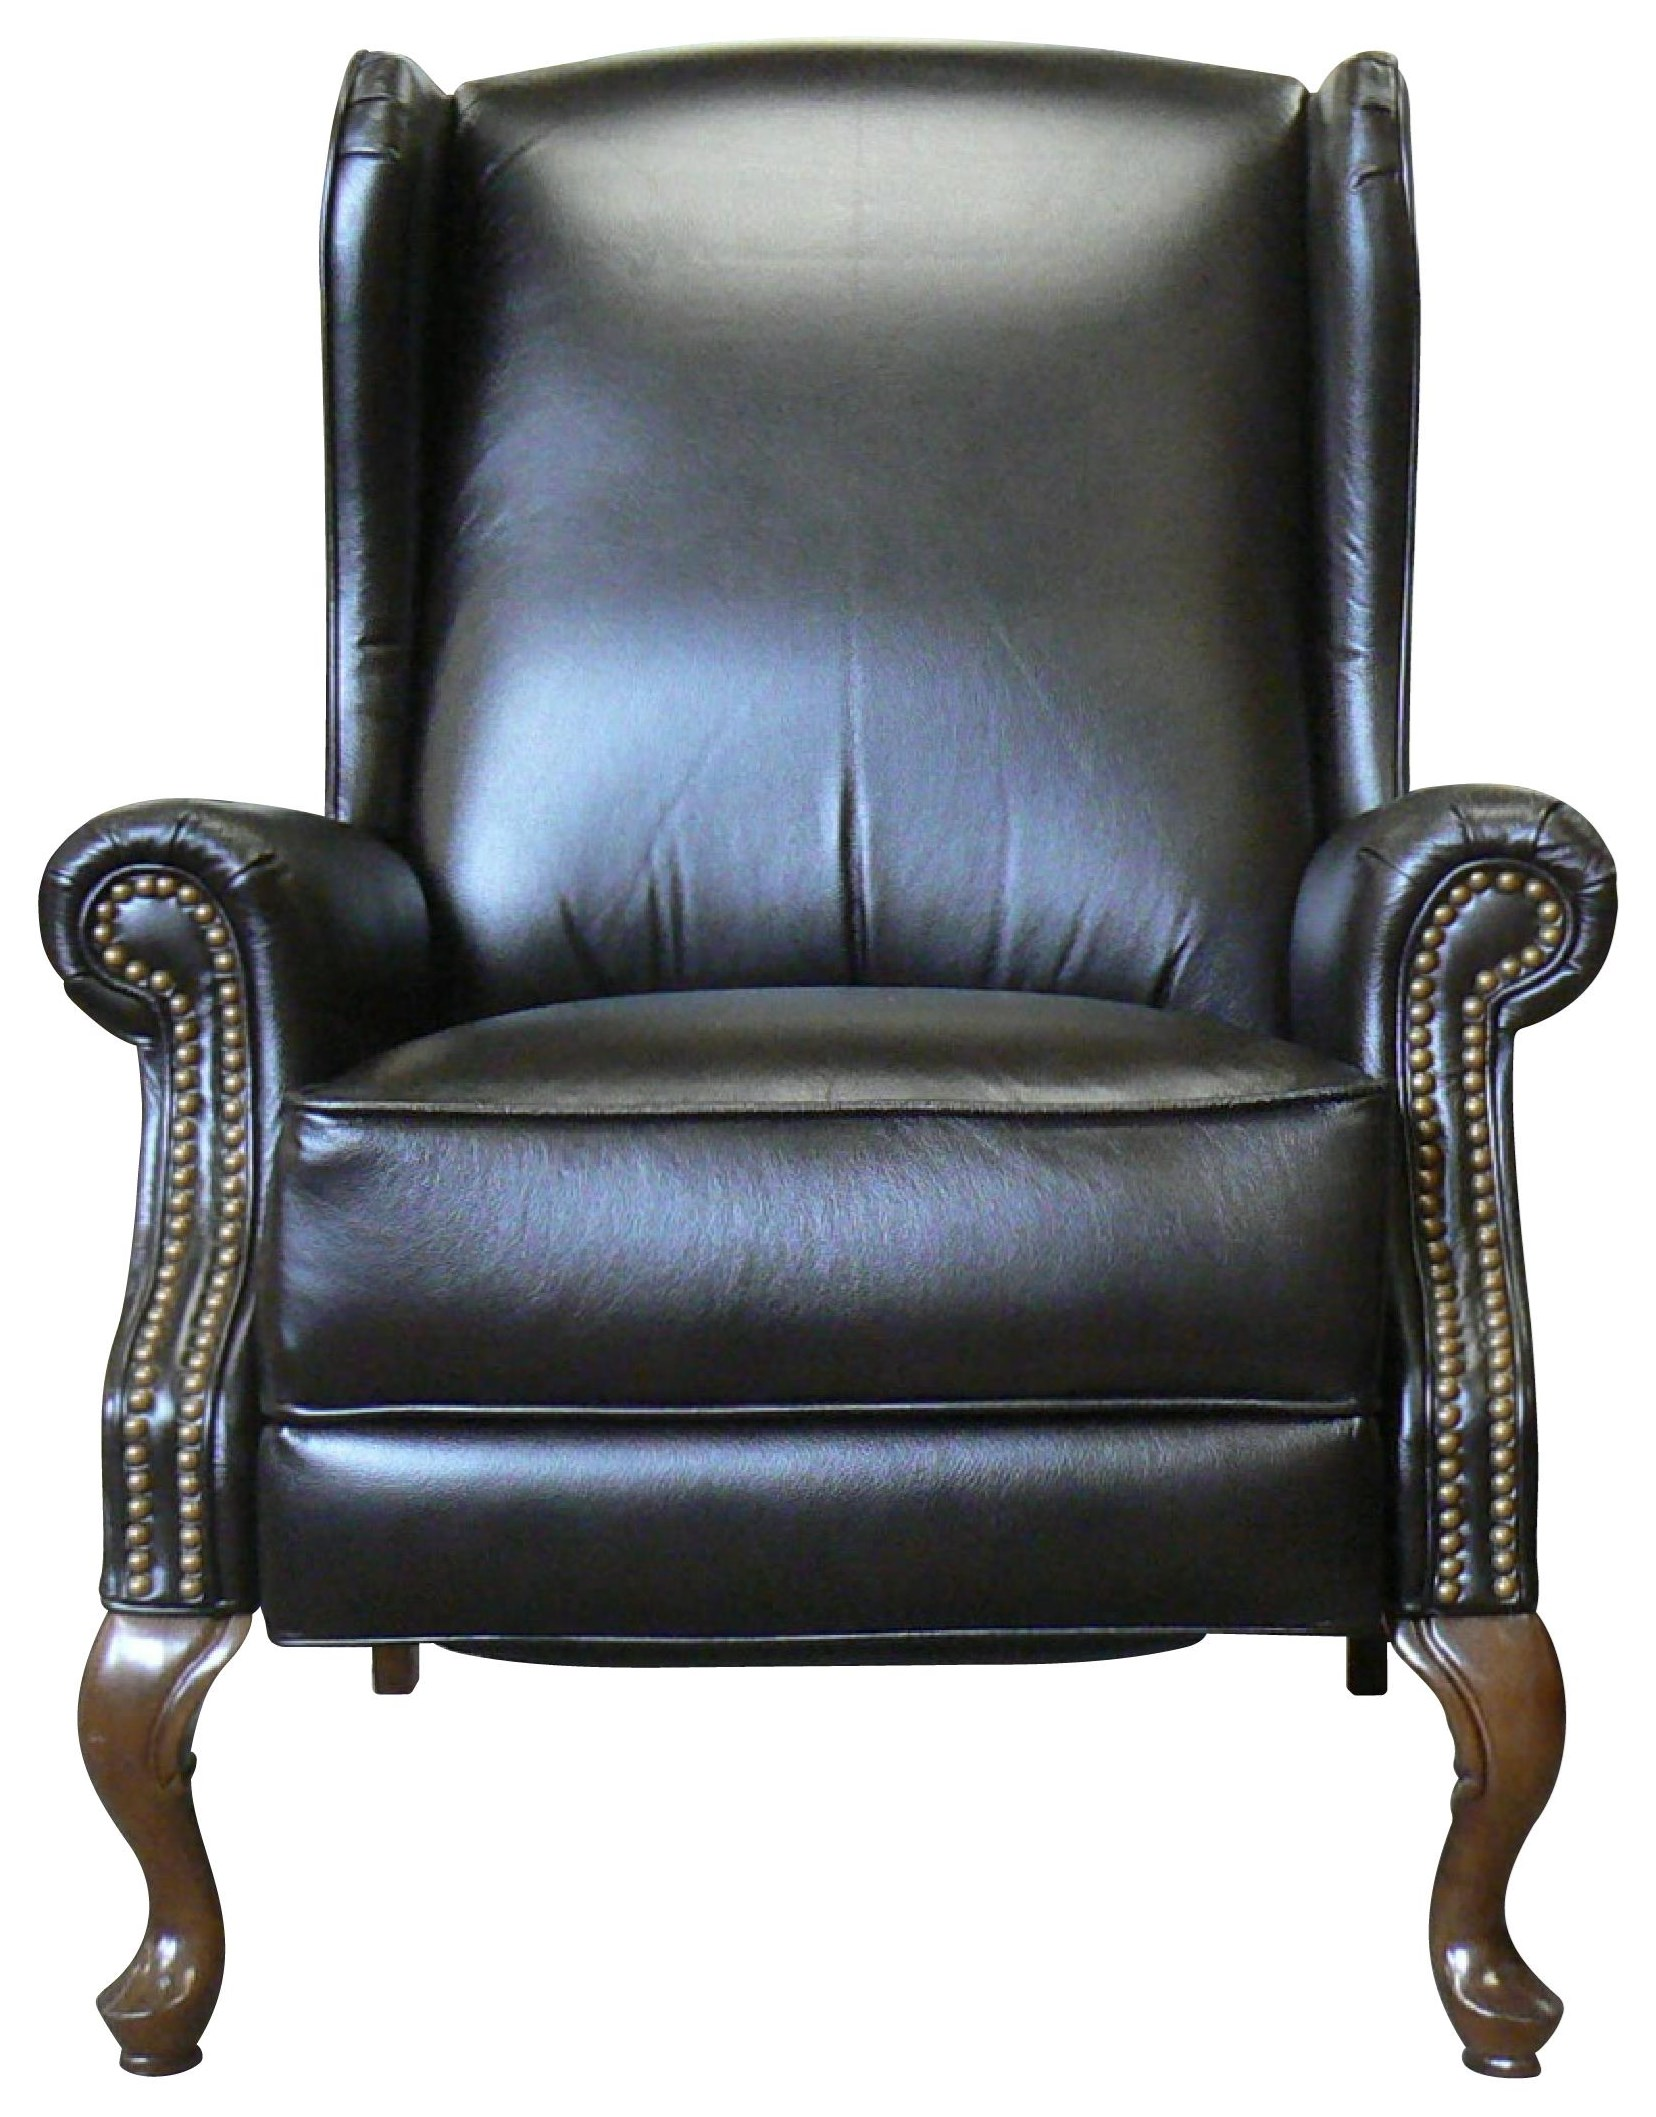 Picture of: La Z Boy Jennings High Leg Leather Reclining Chair Bennett S Furniture And Mattresses High Leg Recliners